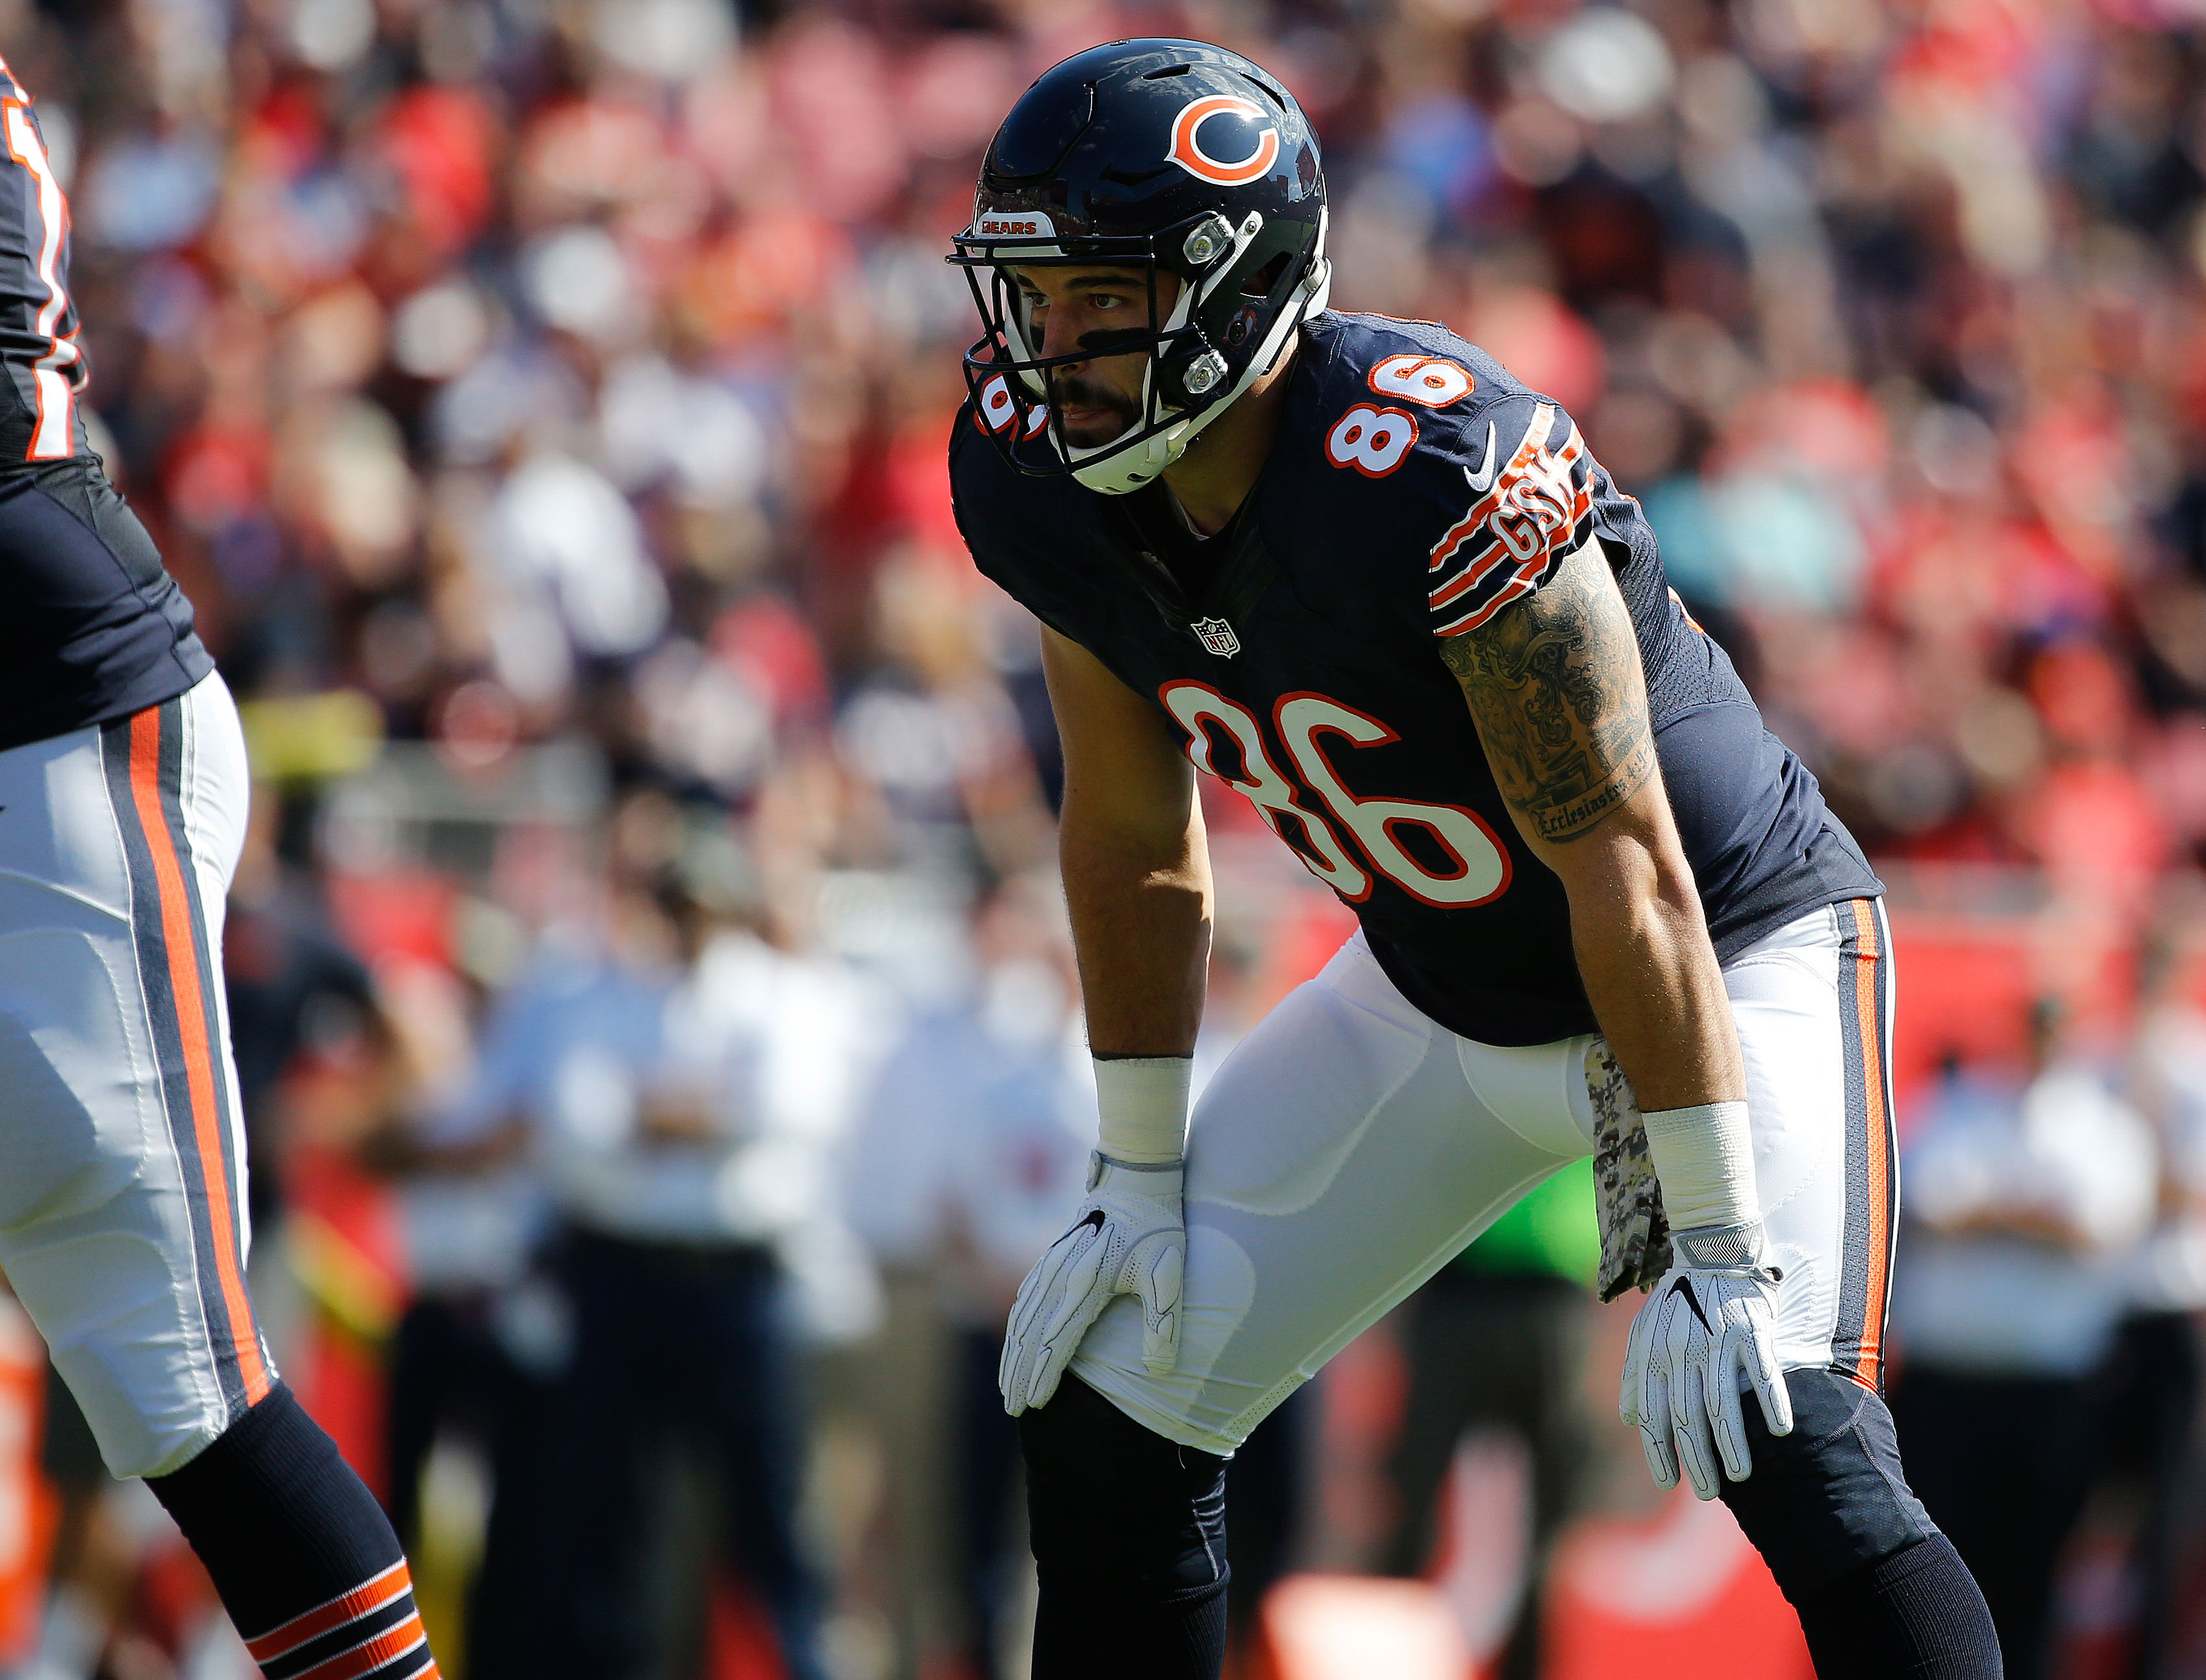 9687994-nfl-chicago-bears-at-tampa-bay-buccaneers